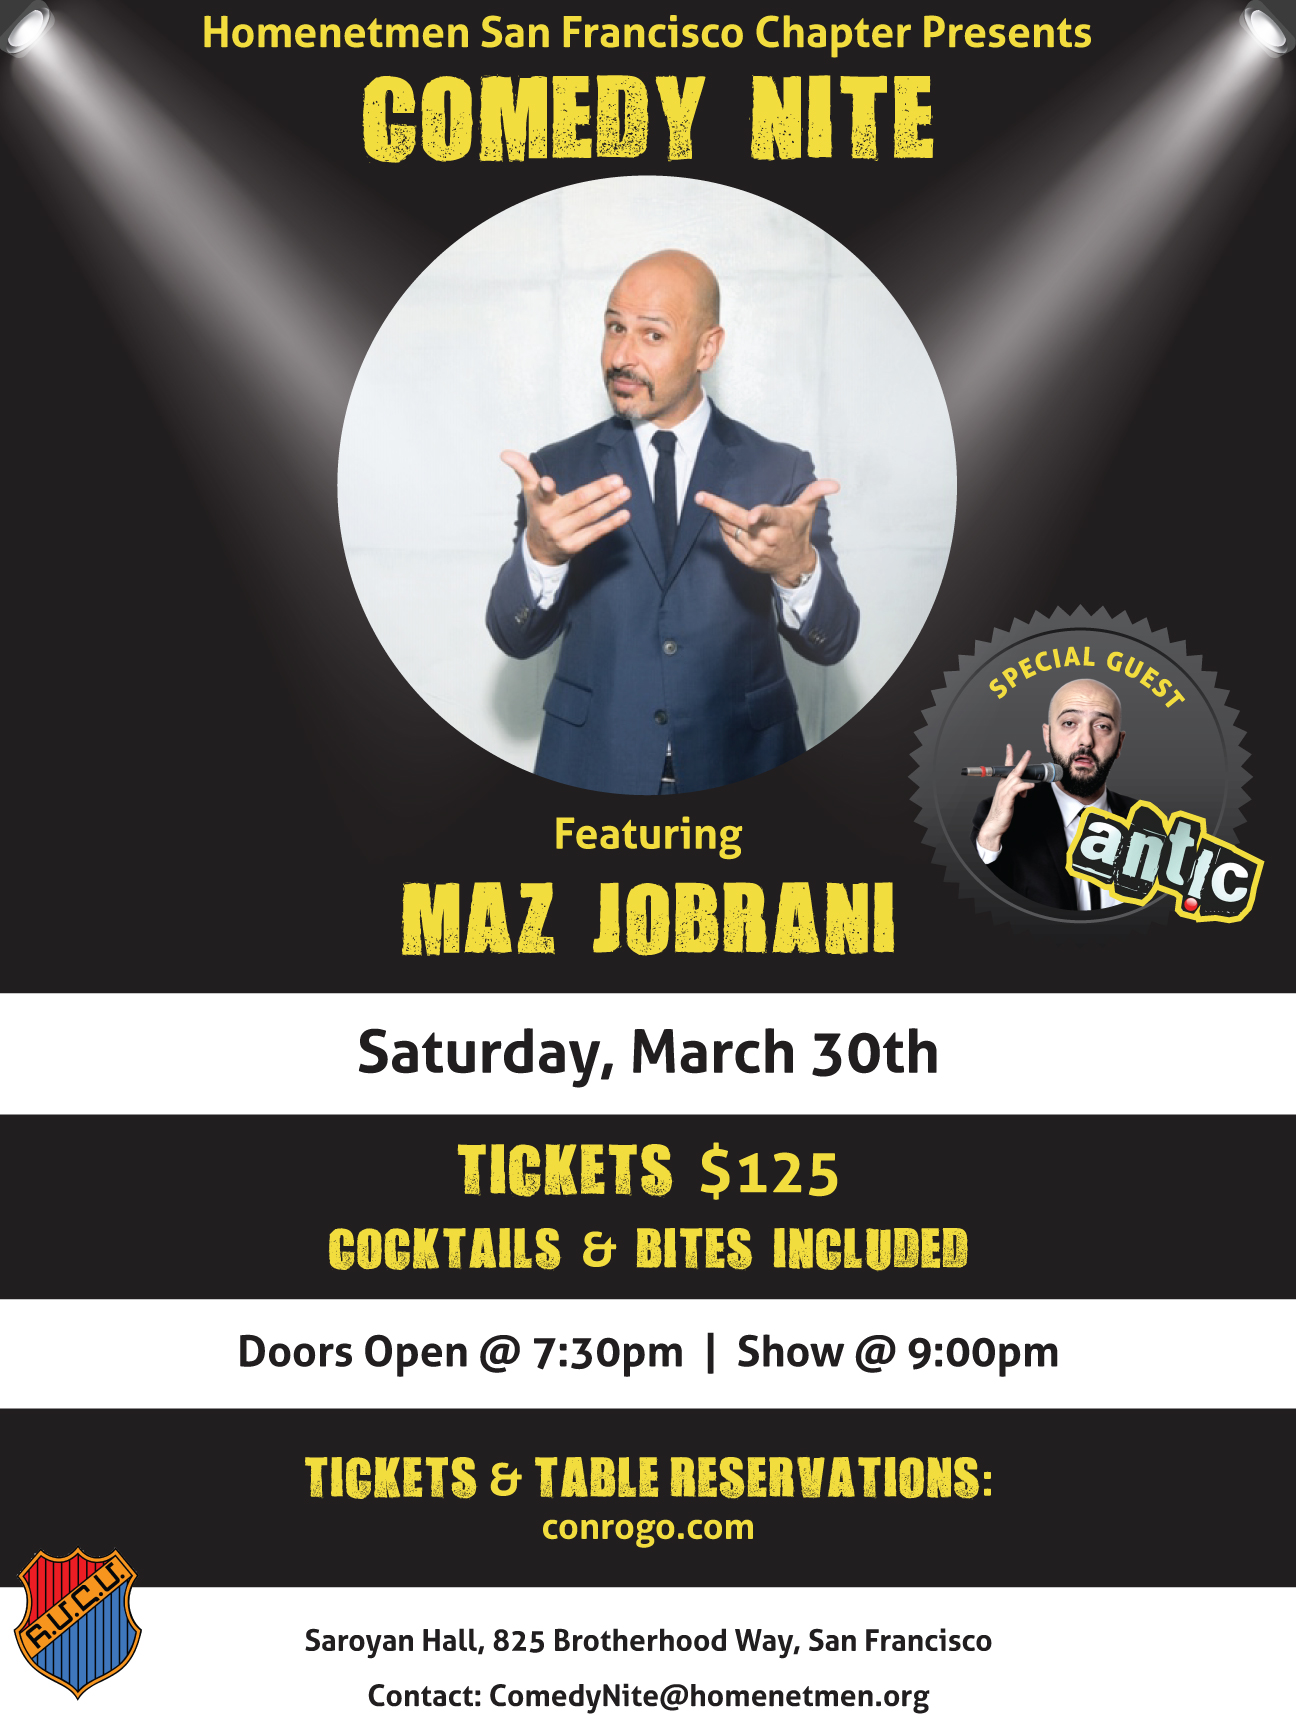 Maz Jobrani Comedy Nite with Special Guest Antic!